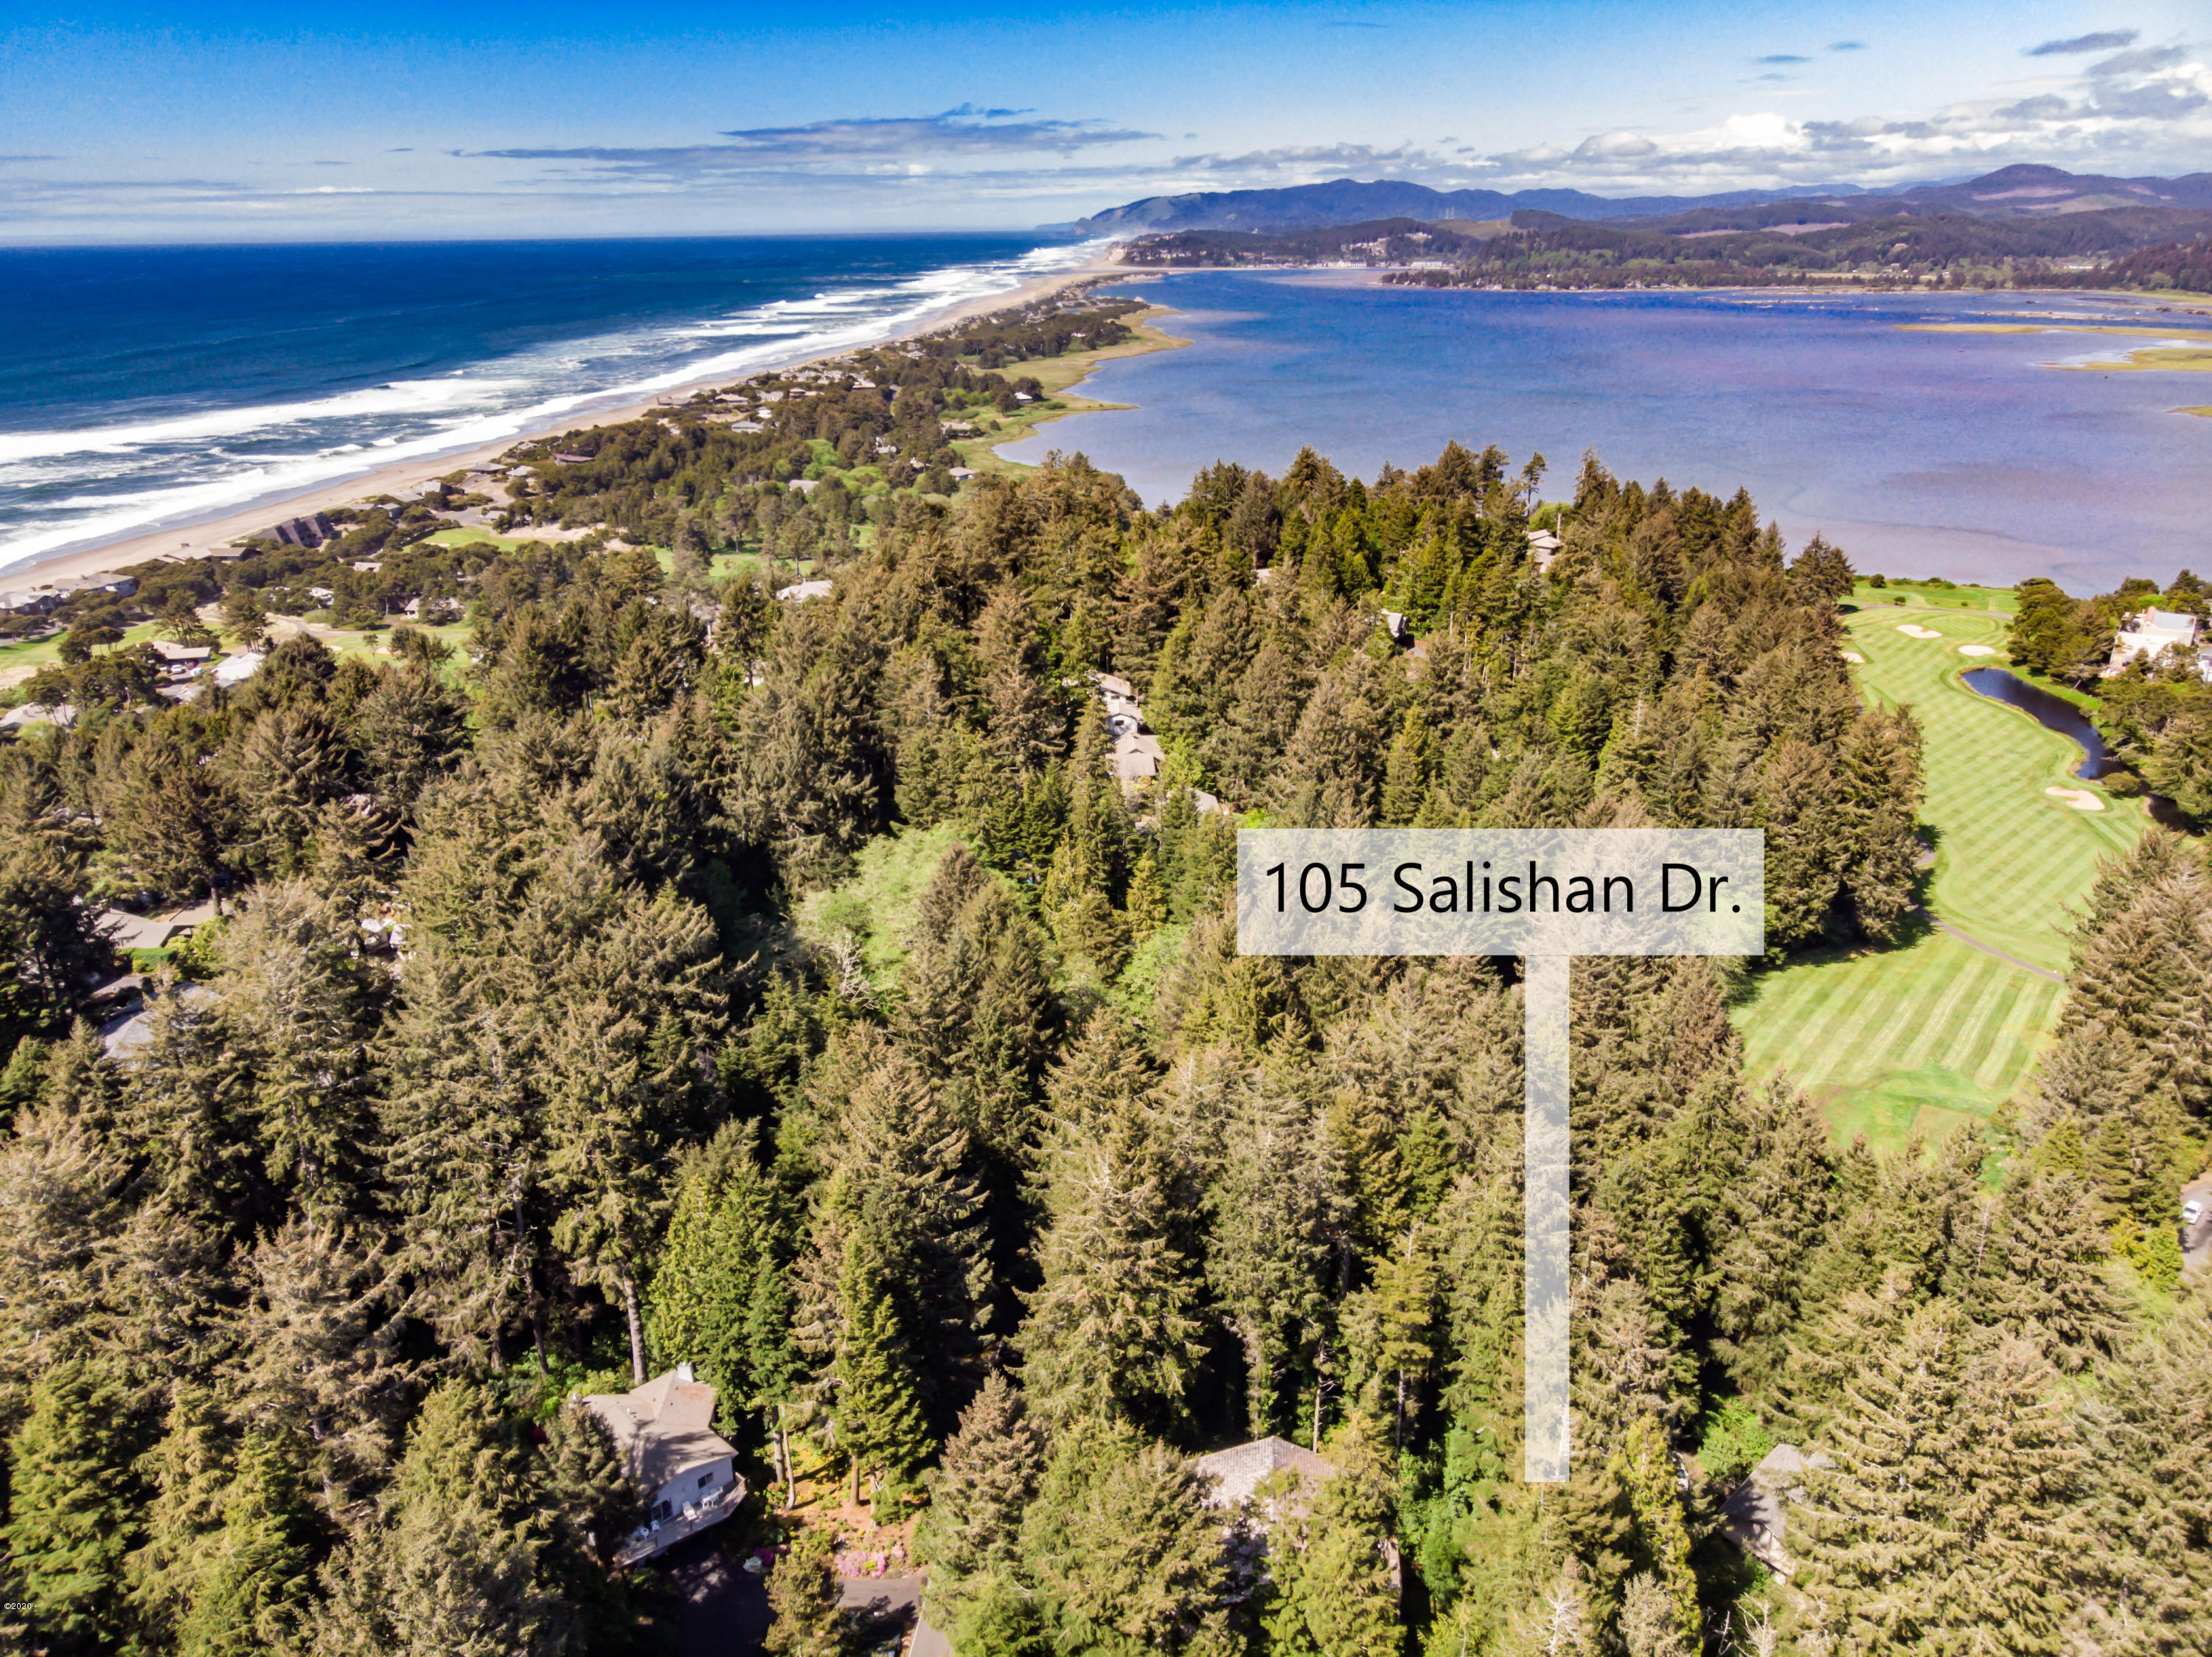 105 Salishan Dr, Gleneden Beach, OR 97388 - 105 Salishan Dr - print-1